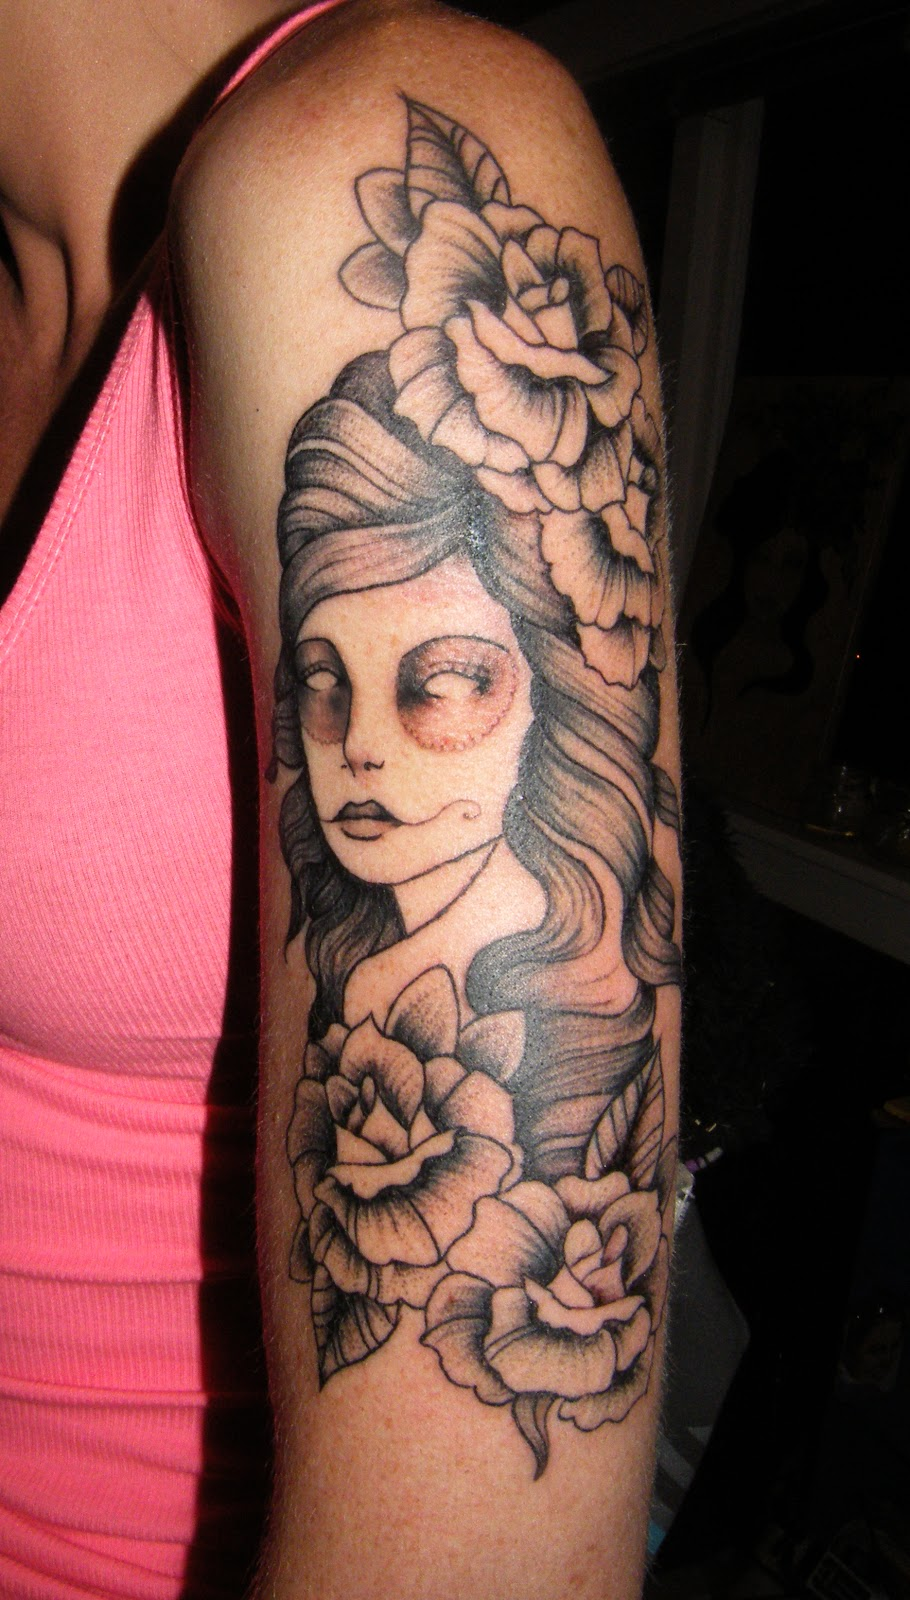 tattoo on arm - photo #33